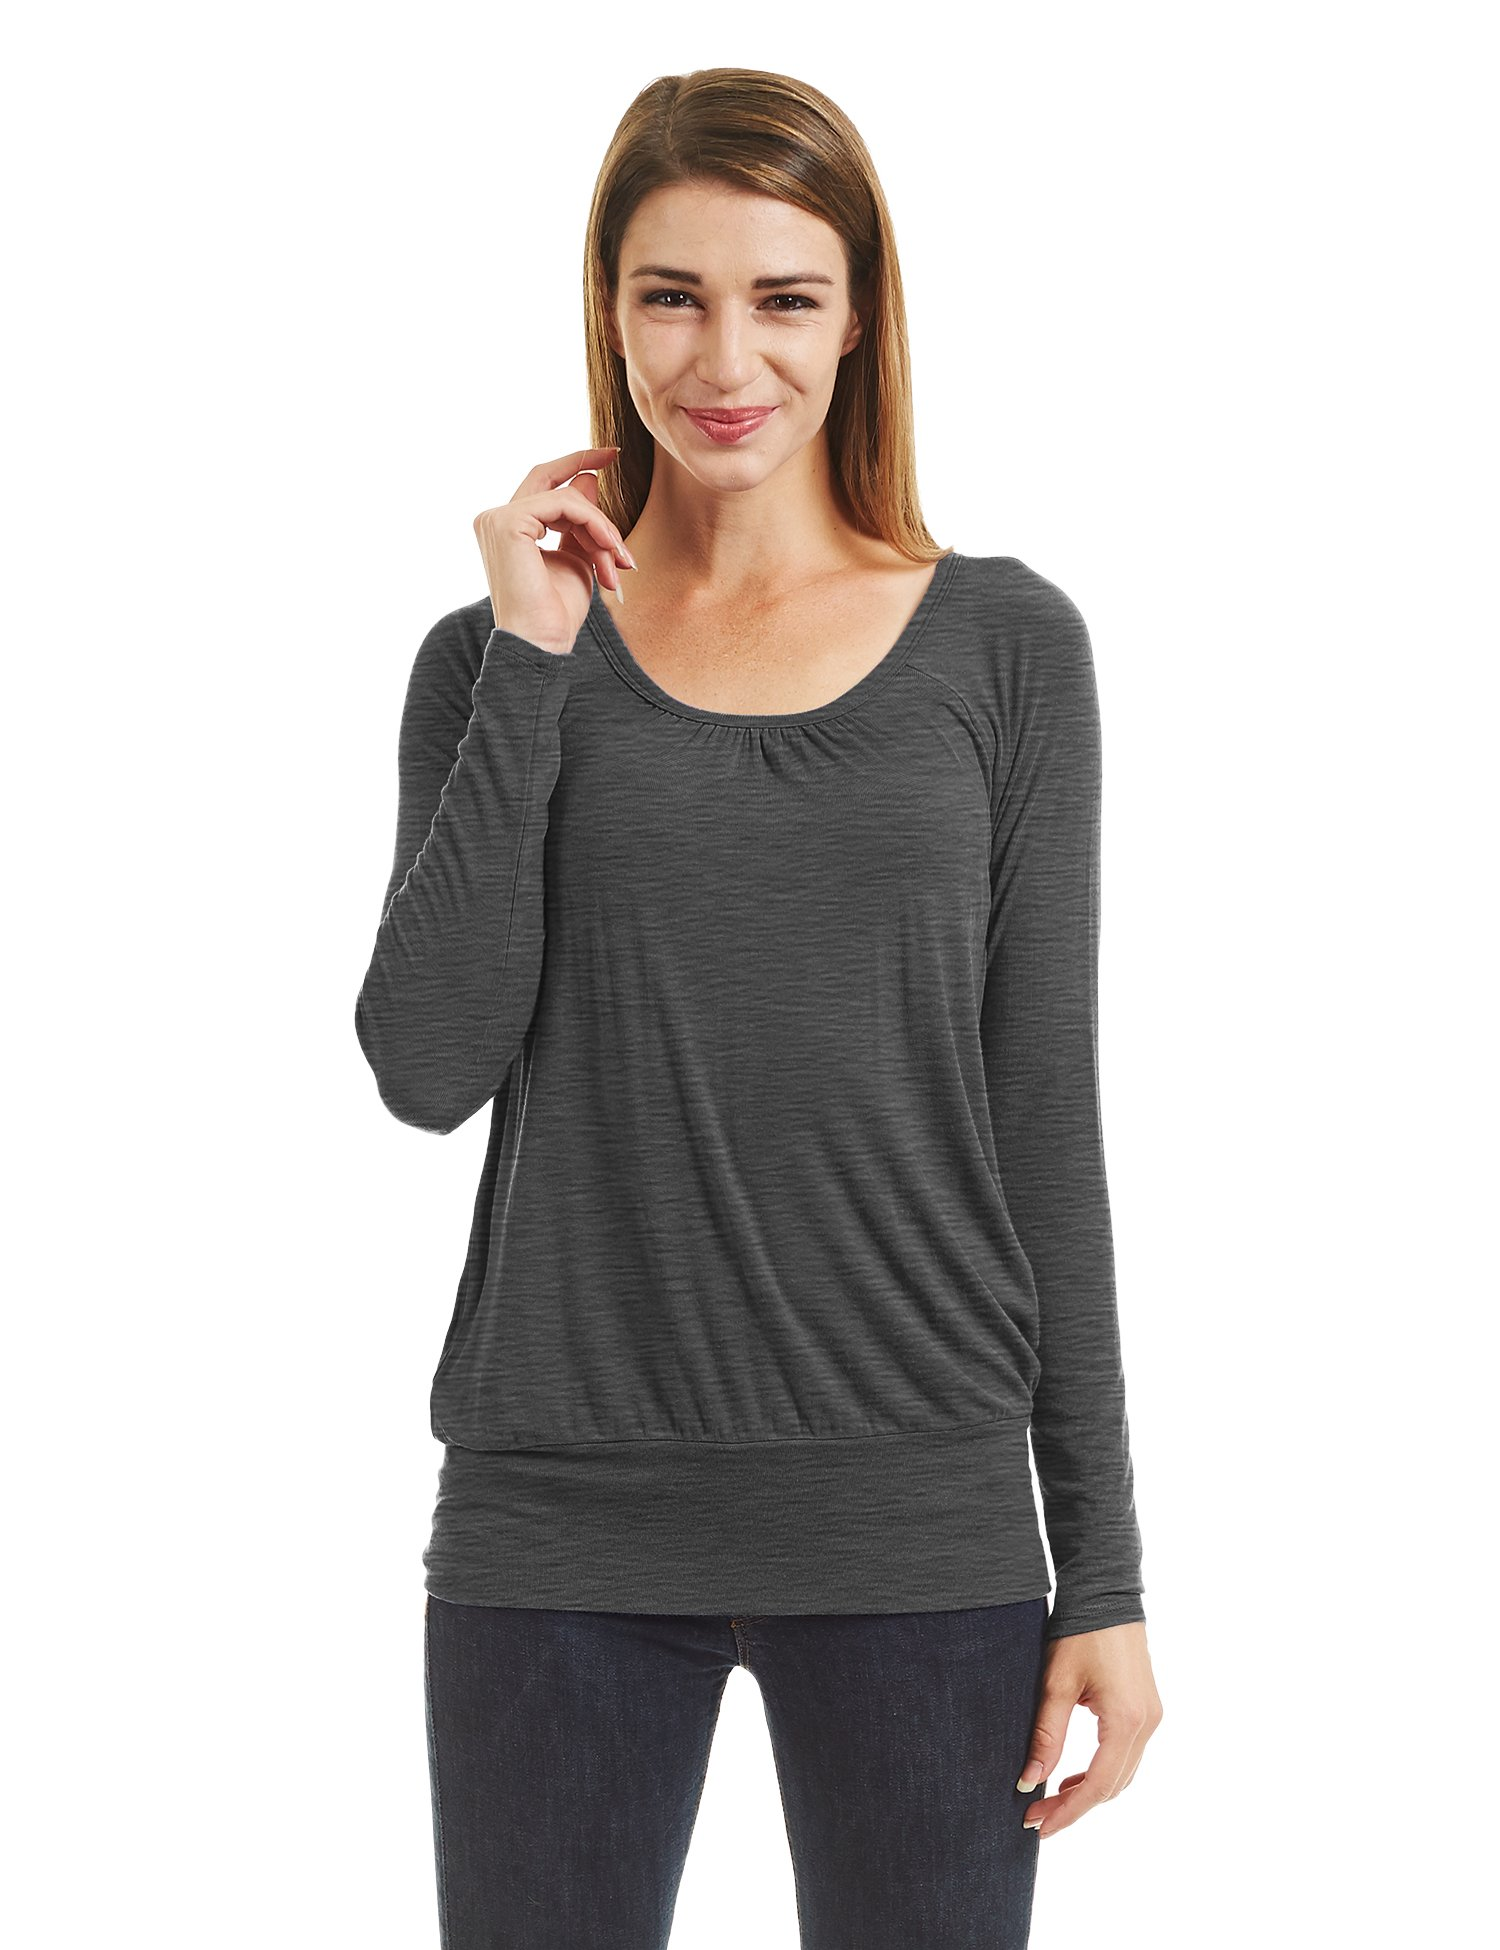 WT1473 Womens Scoop Neck Long Sleeve Front Pleated Top XL HEATHER_CHARCOAL